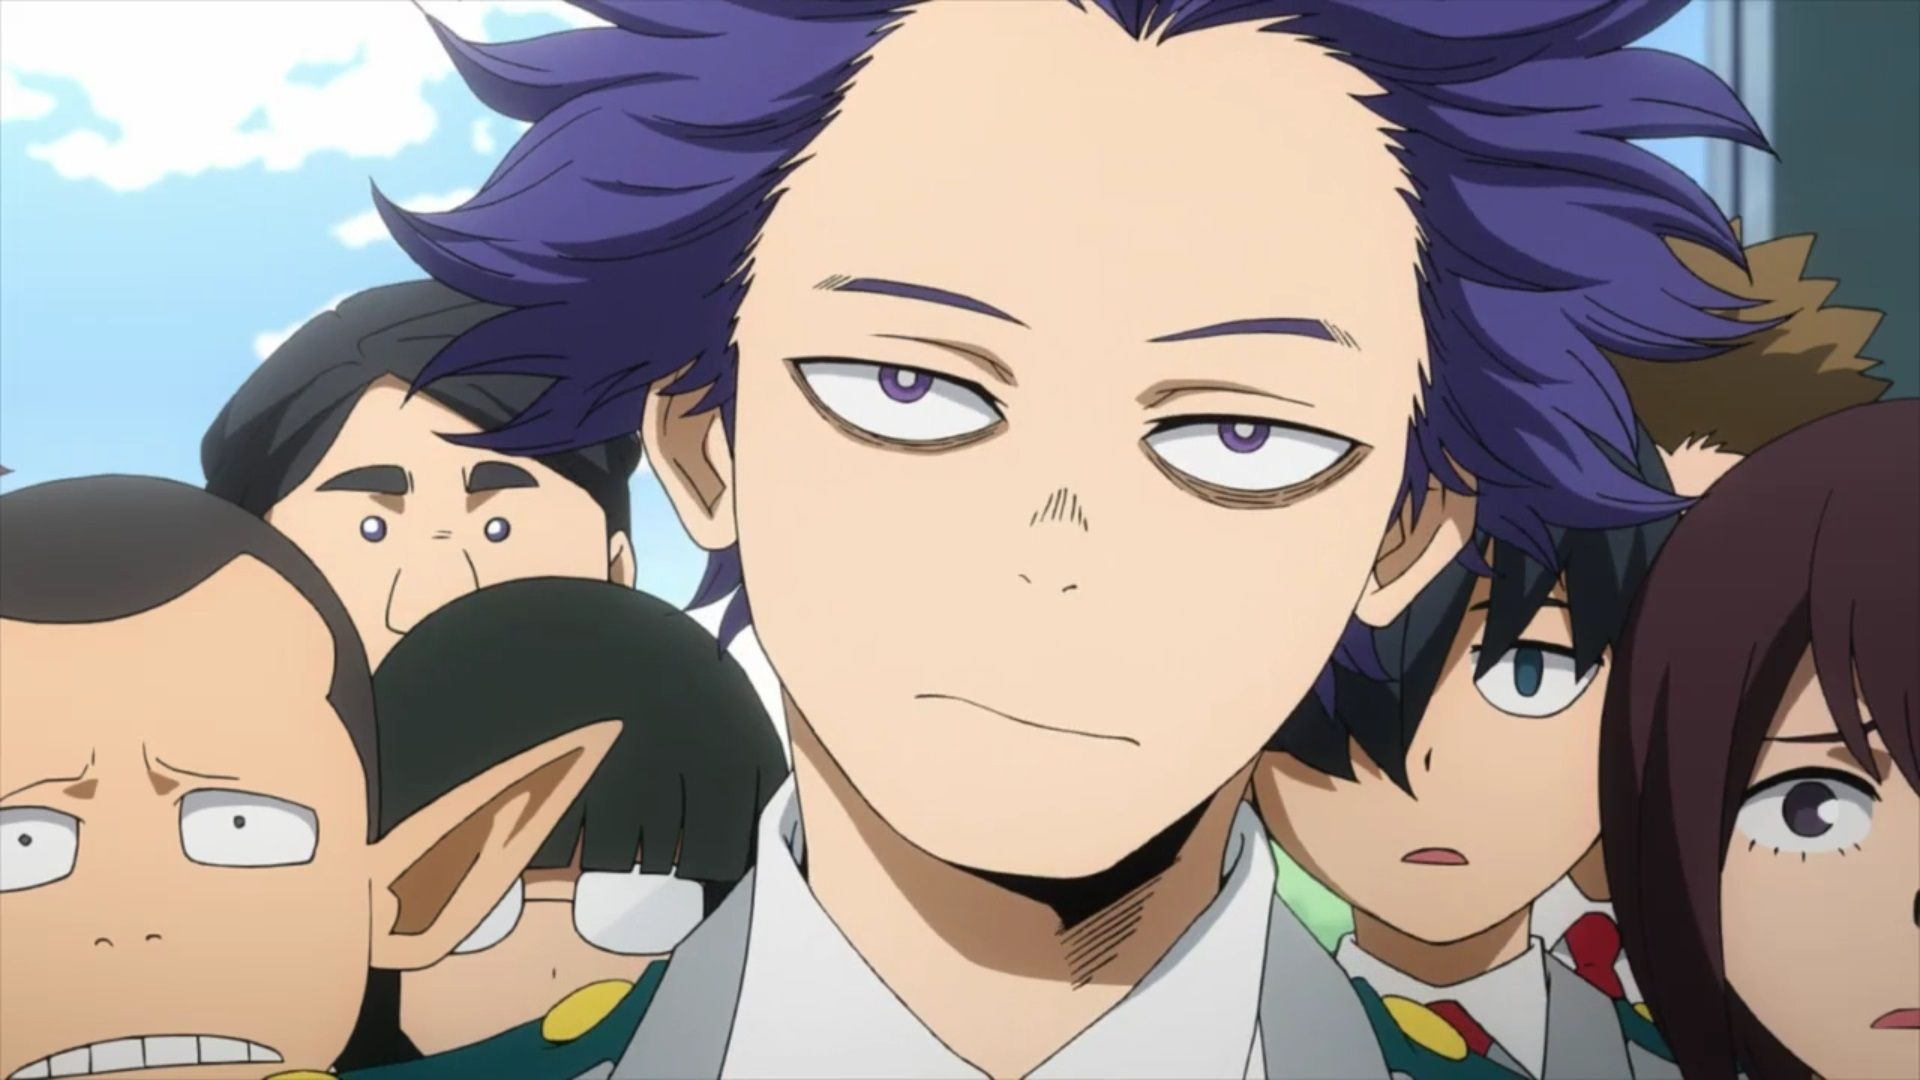 I just got result 'Hitoshi Shinso' on quiz 'Who's Your BNHA Boyfriend?'.  What will you get?   My hero, Hero, Hero academia characters